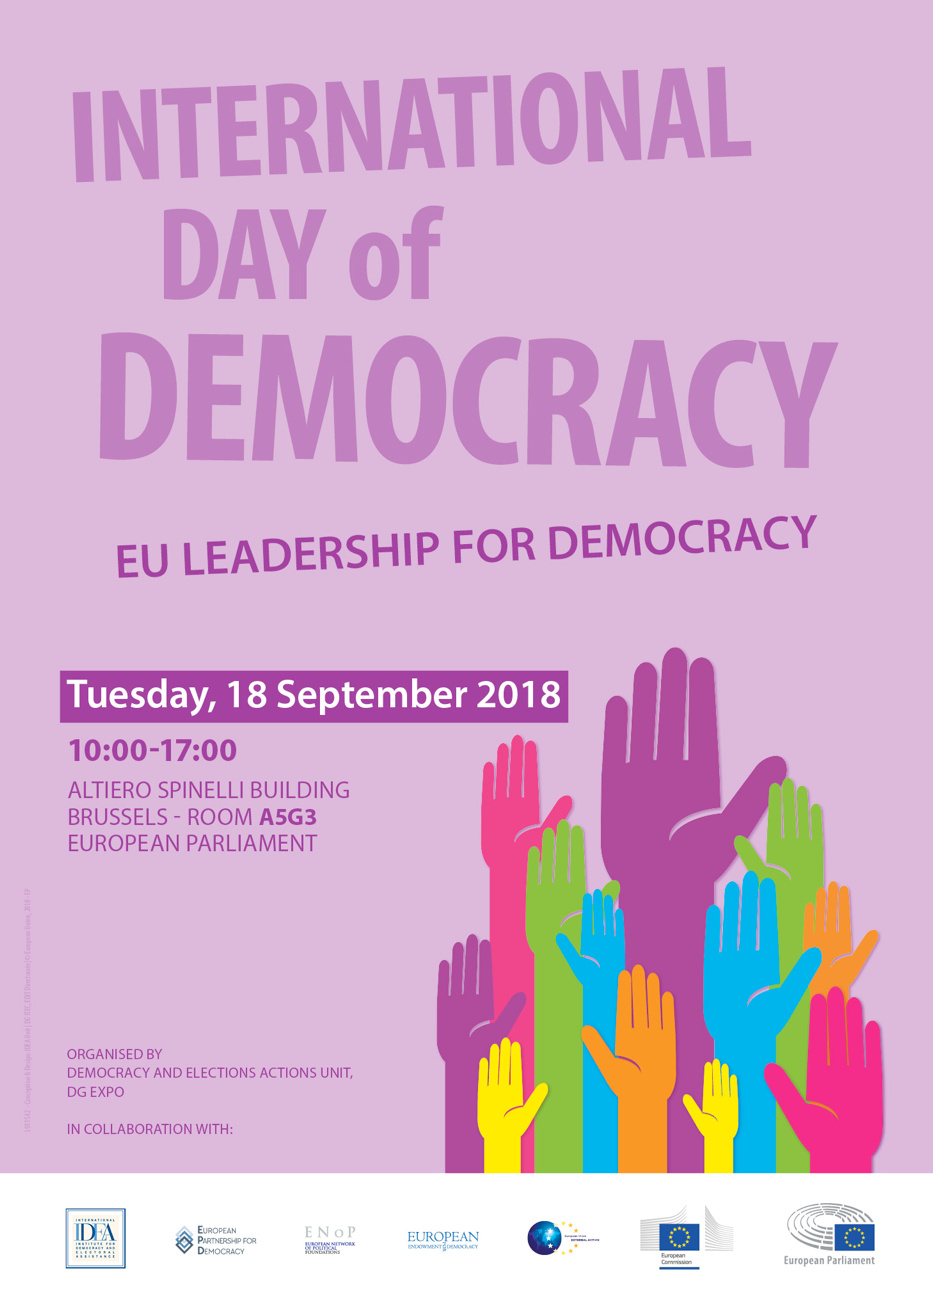 Poster announcing the 2018 International Day of Democracy event in the European Parliament with room number and time slot